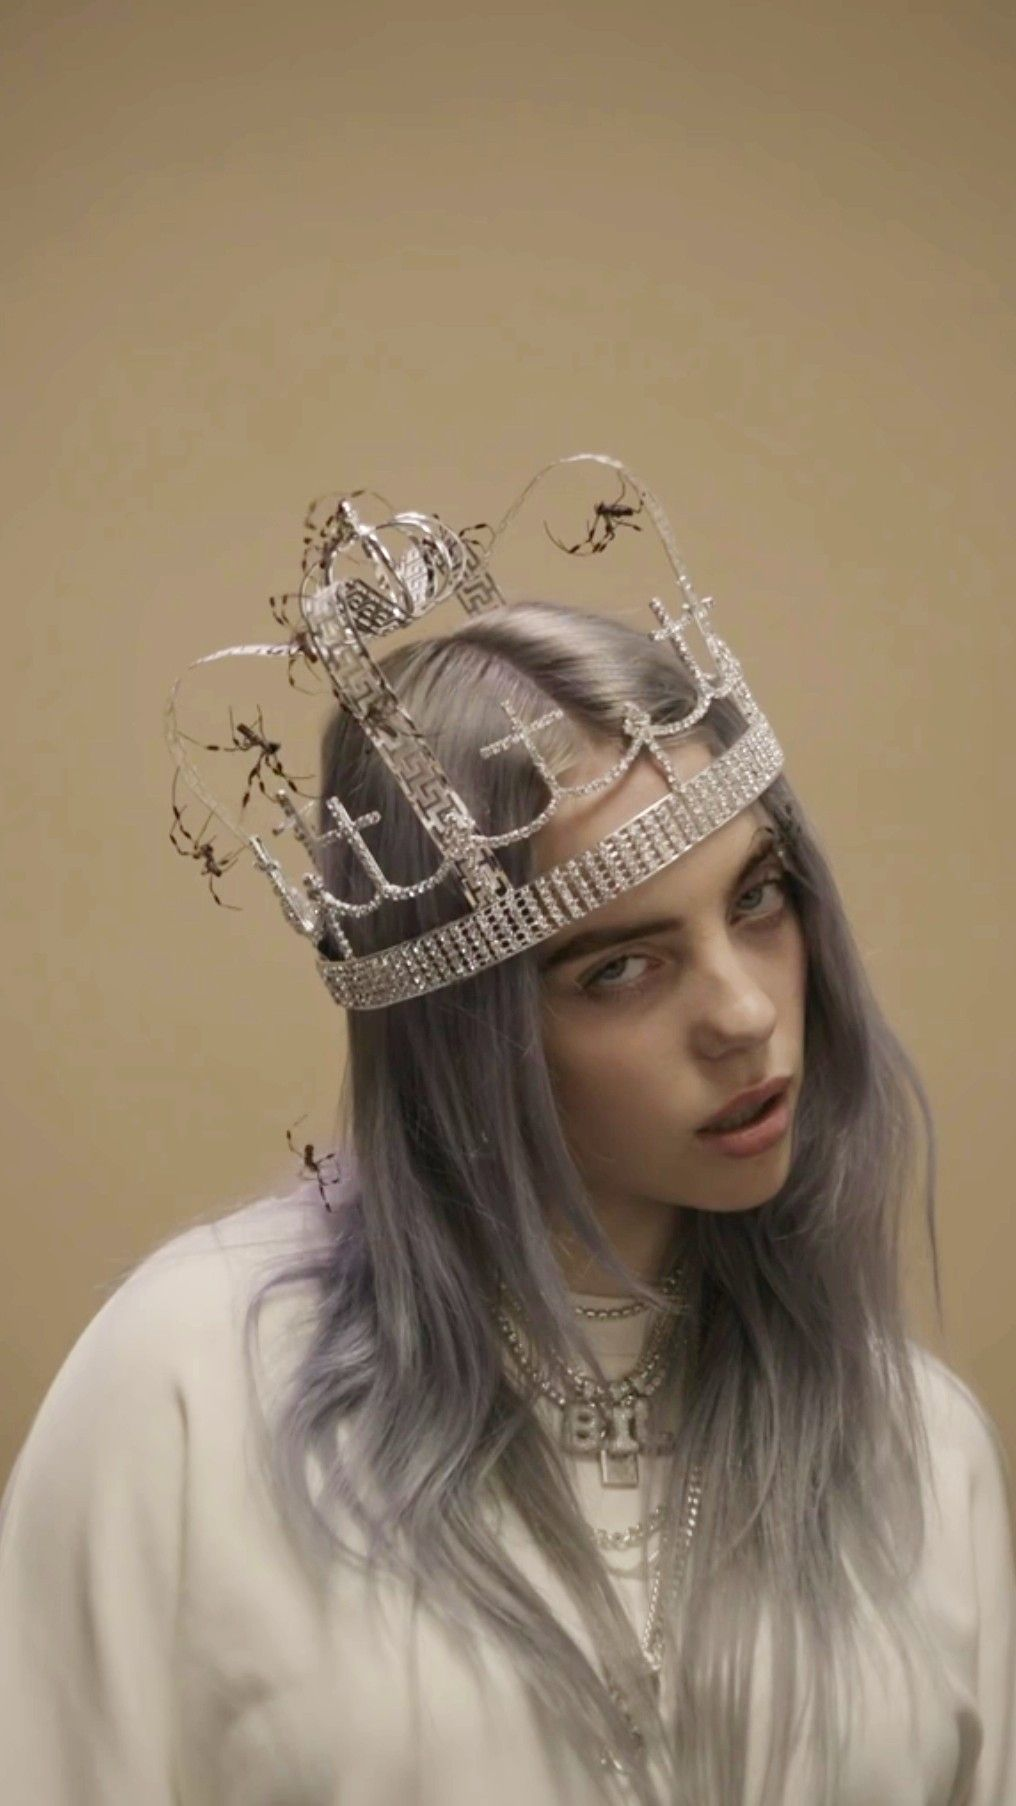 Billie Eilish Wallpaper Chrome Billie Billie Eilish Pretty People